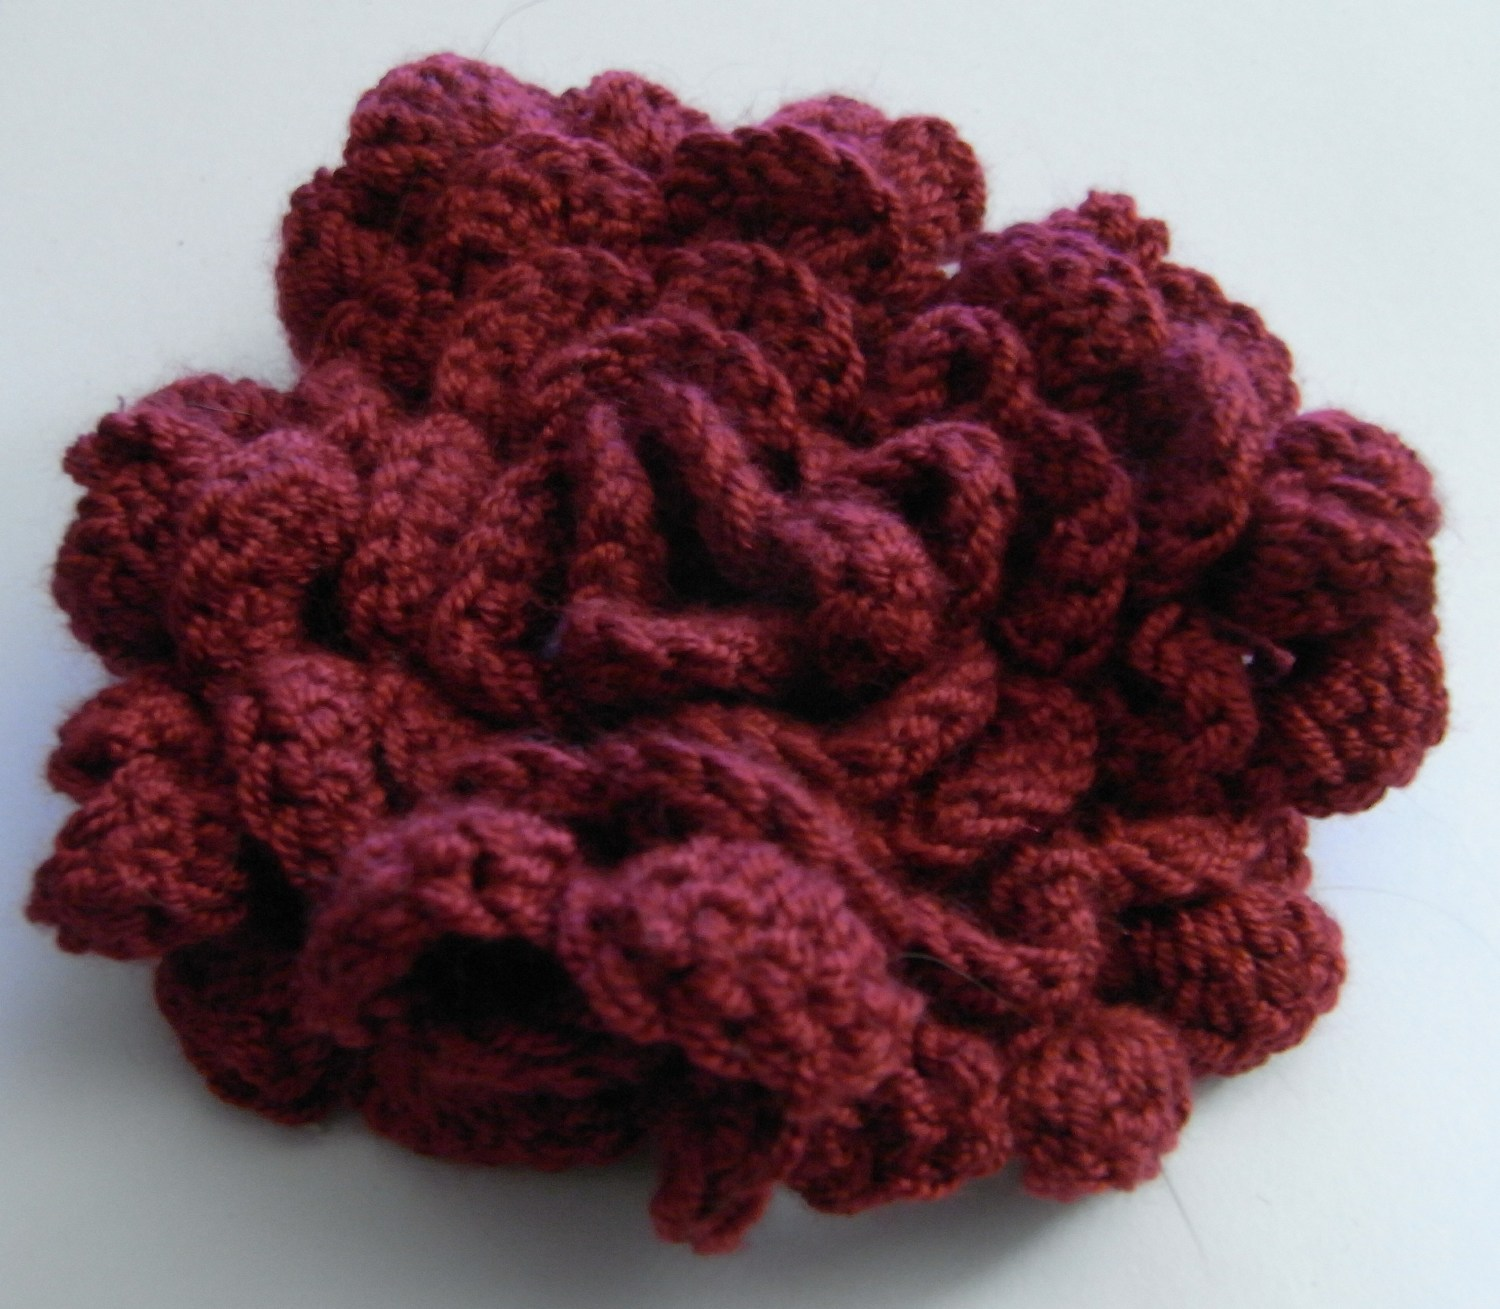 CROCHET FLOWER PATTERNS – Crochet Club